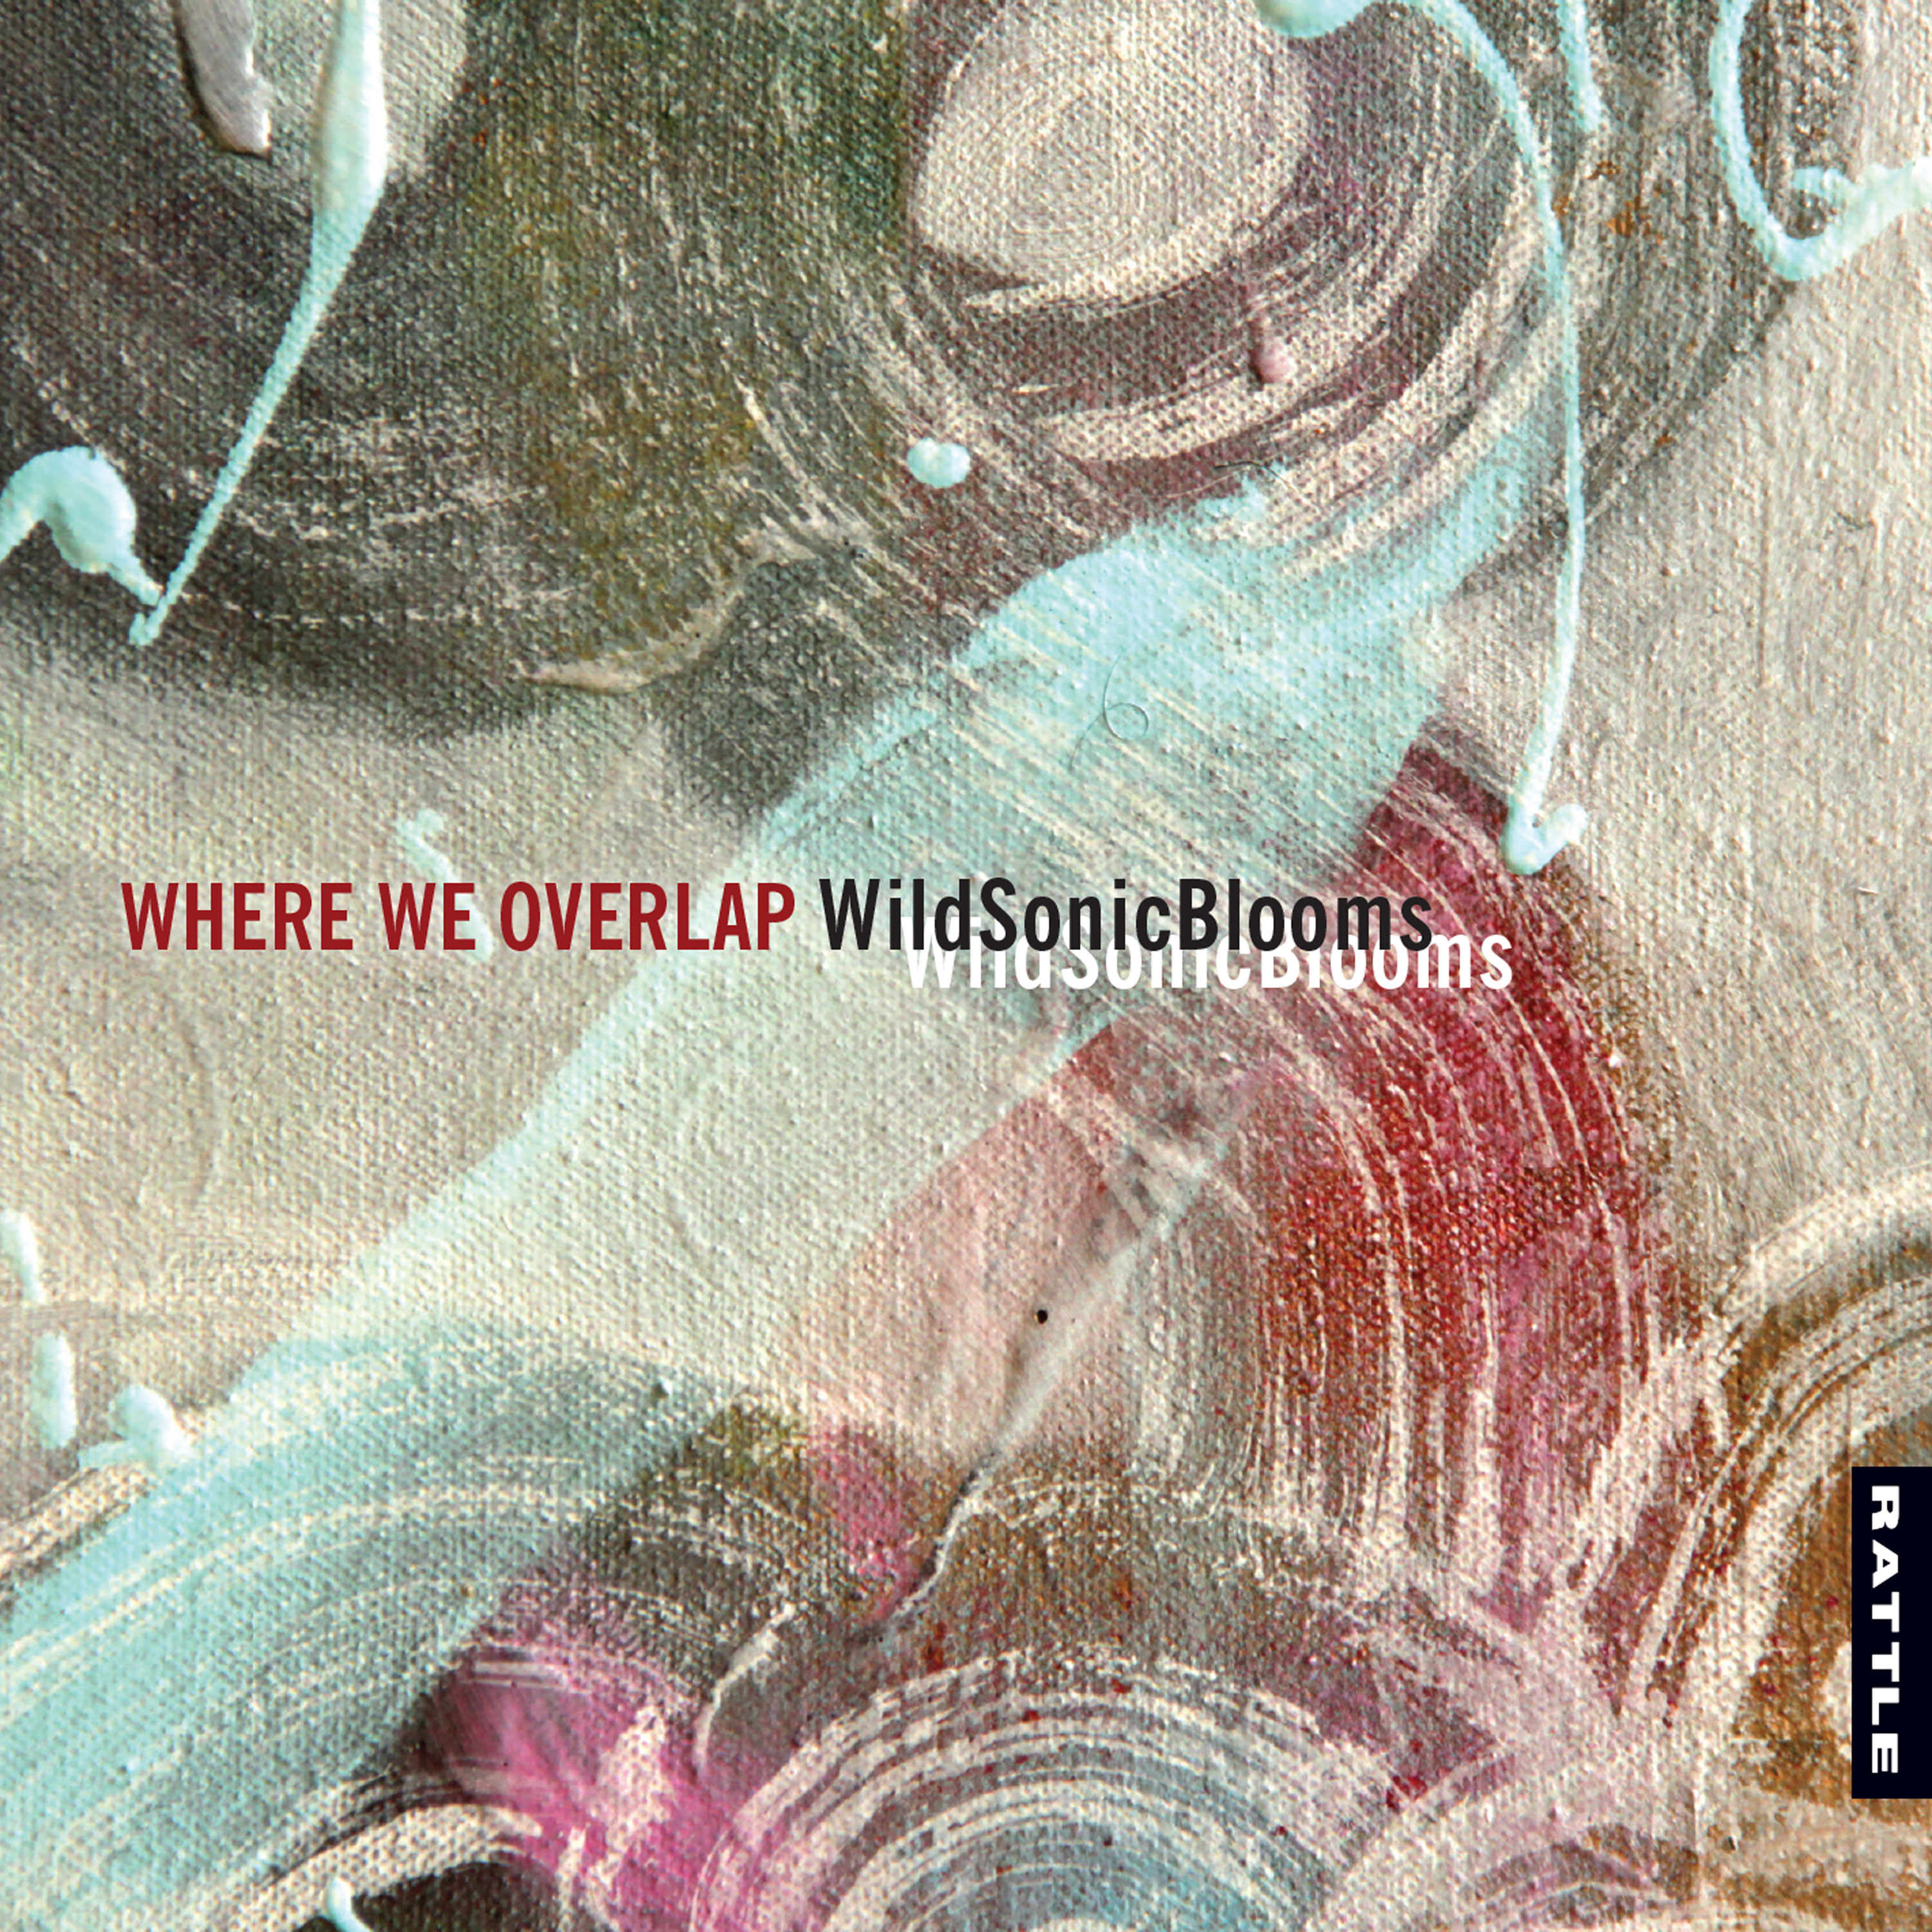 WildSonicBlooms | Where We Overlap - downloadable MP3 ALBUM